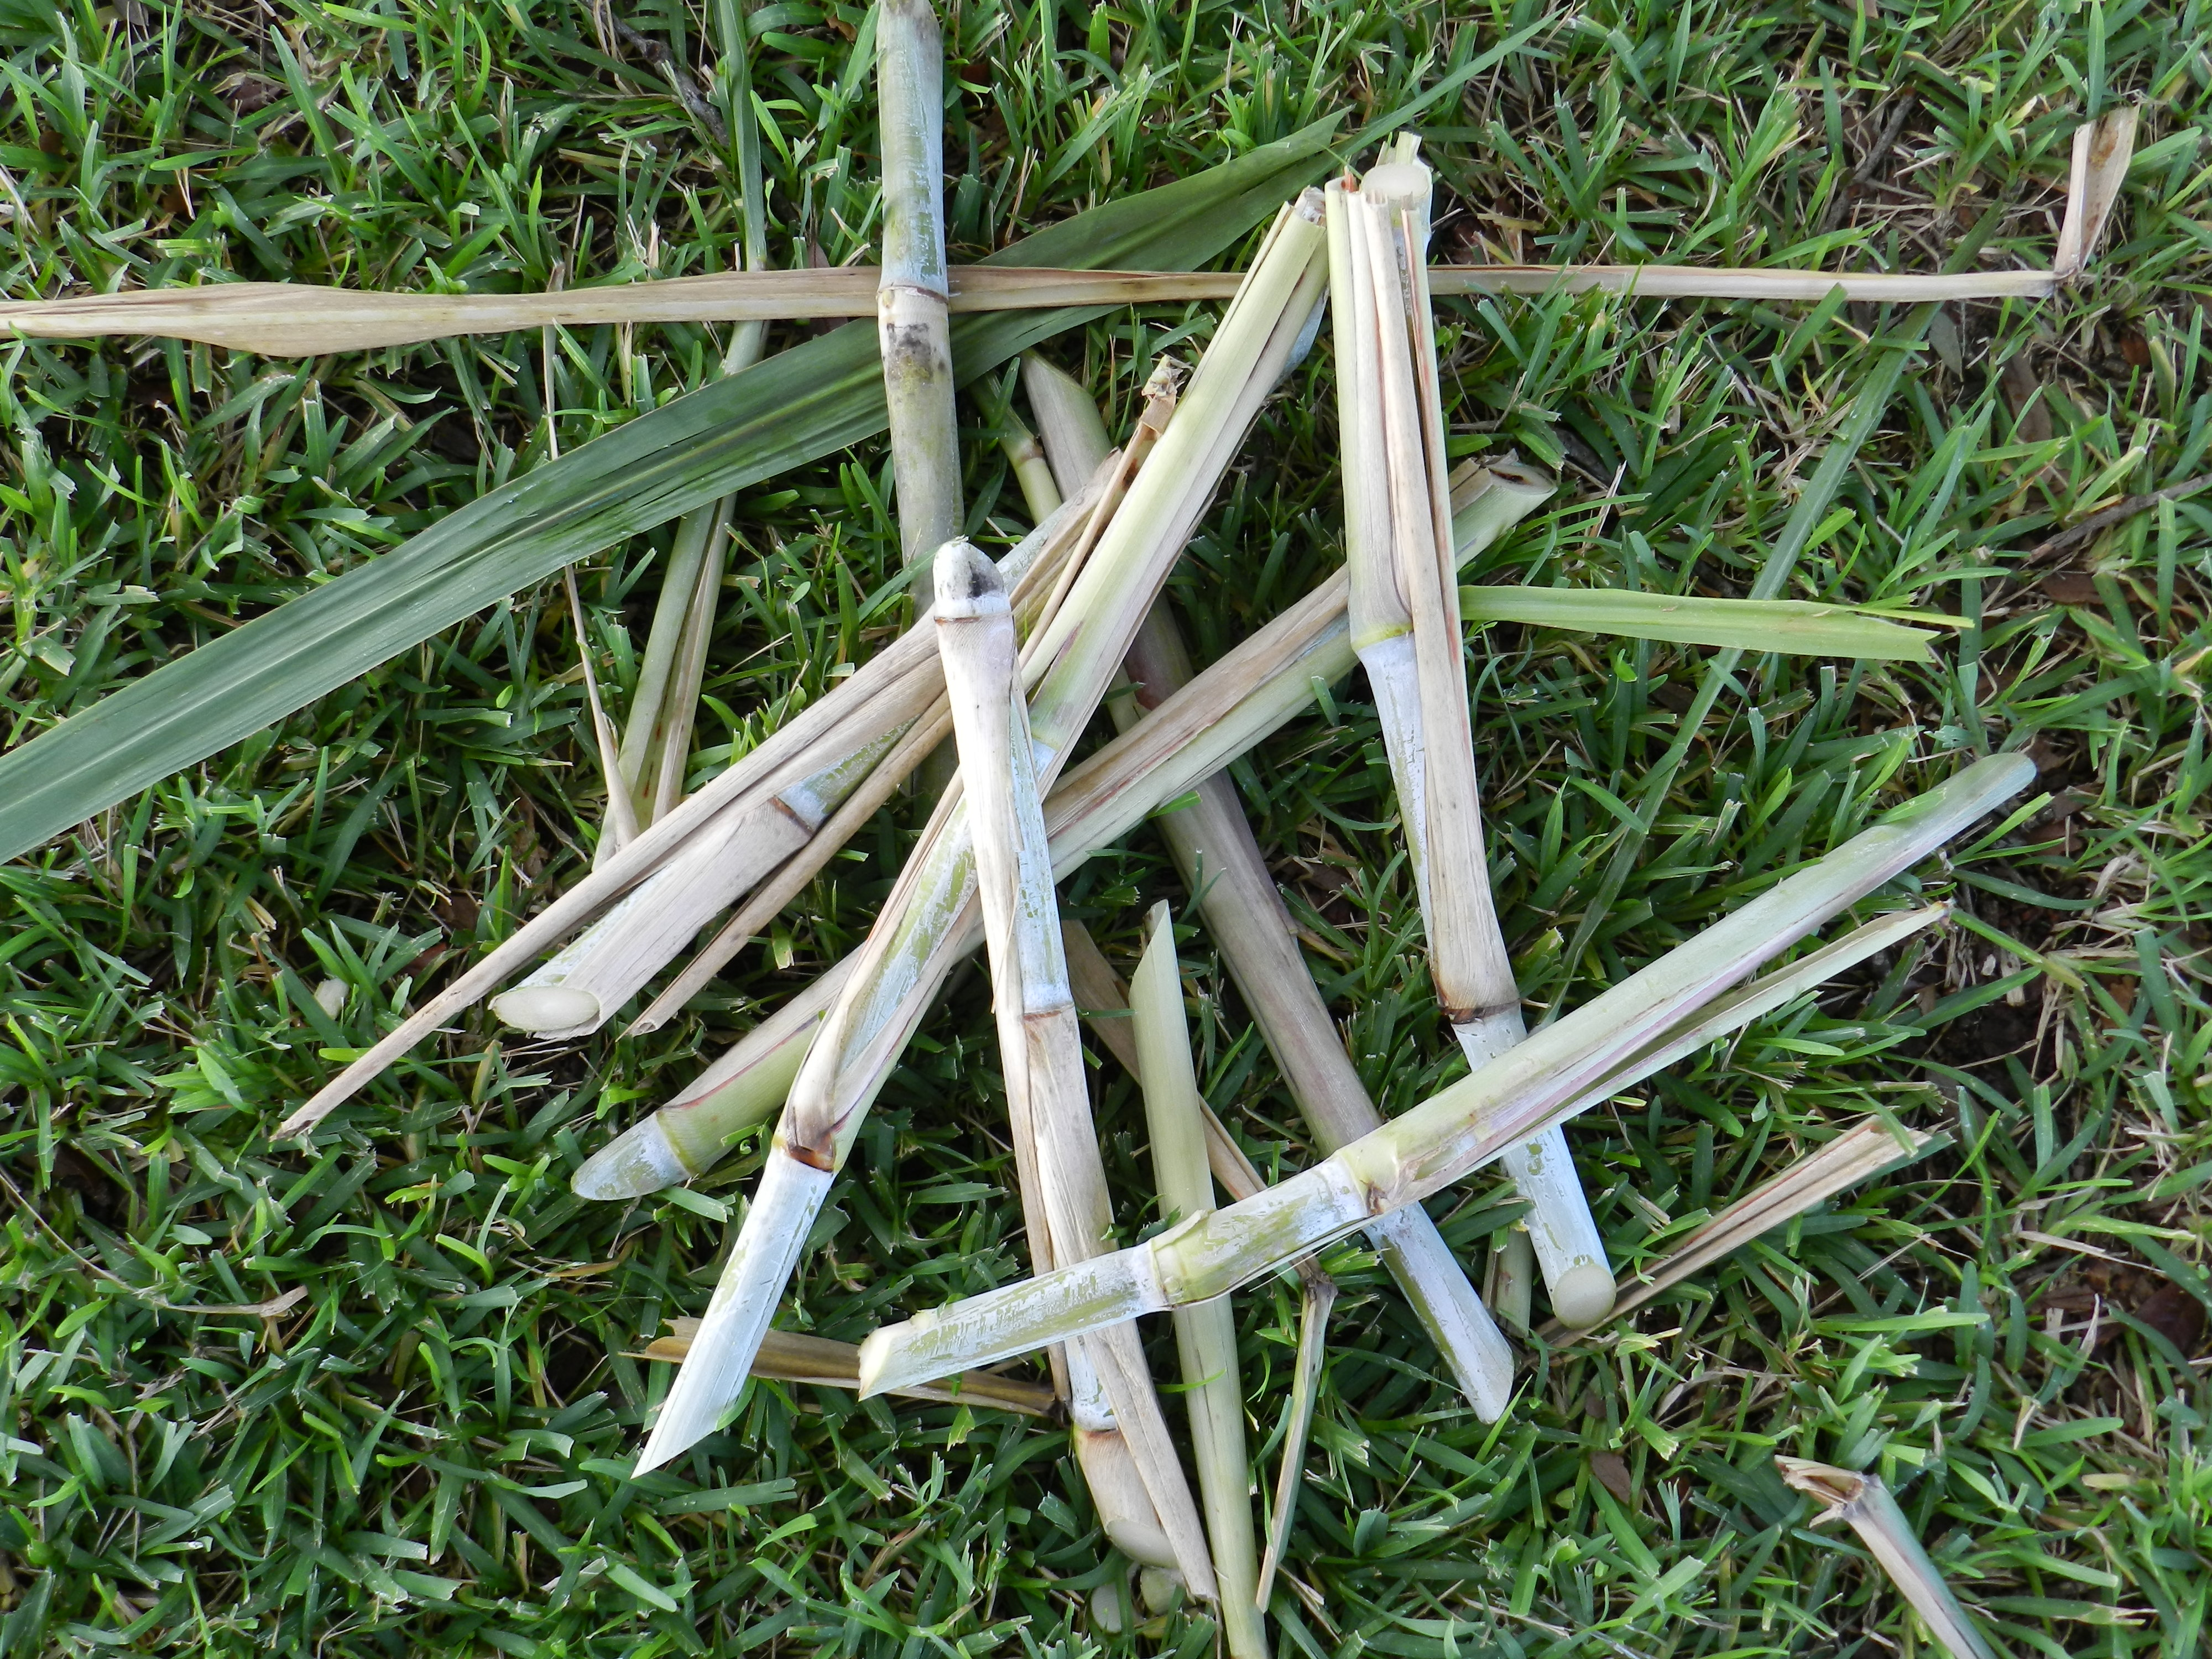 Billets are short pieces of the sugarcane stalk